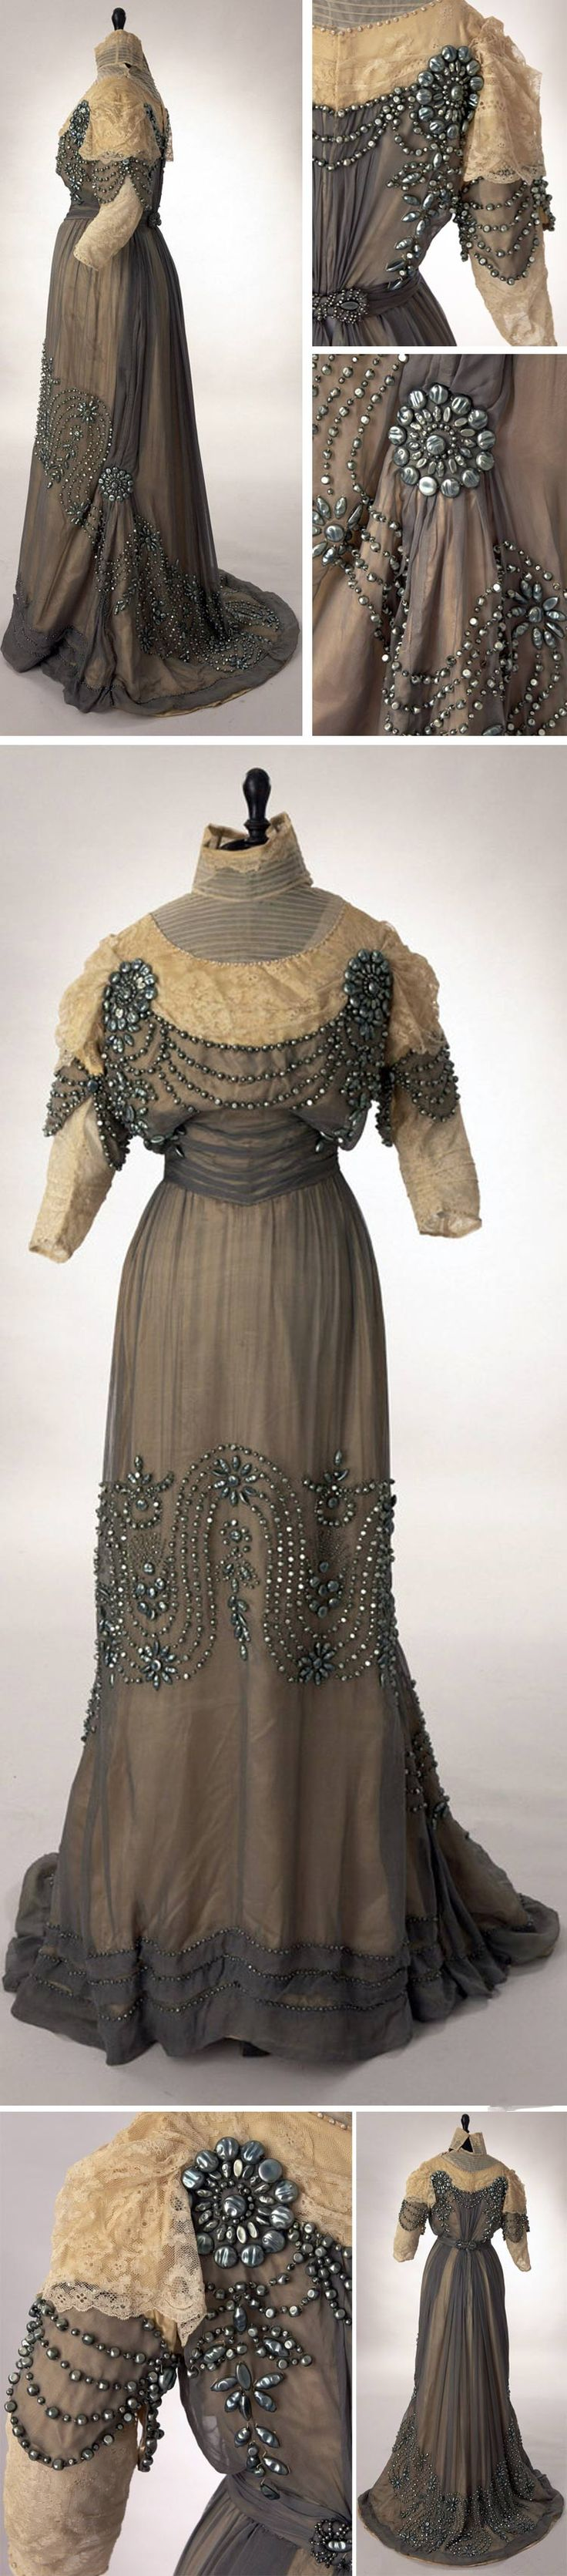 Reception gown, Mme. Renfrew Wood, New York, 1912. Gray silk chiffon over ivory China silk trimmed w/hand-painted metal shells made to look like freshwater pearls. Upper bodice & sleeves are ivory lace over cream silk. Stand collar down through throat is pleated silk tulle set with appliquéd lace. Satin-covered discs accent neckline between chiffon & tulle-- also at sleeve hem. Chiffon on bodice is pleated just above waistline to give cummerbund effect. Slight train. Via Woodland Farms…